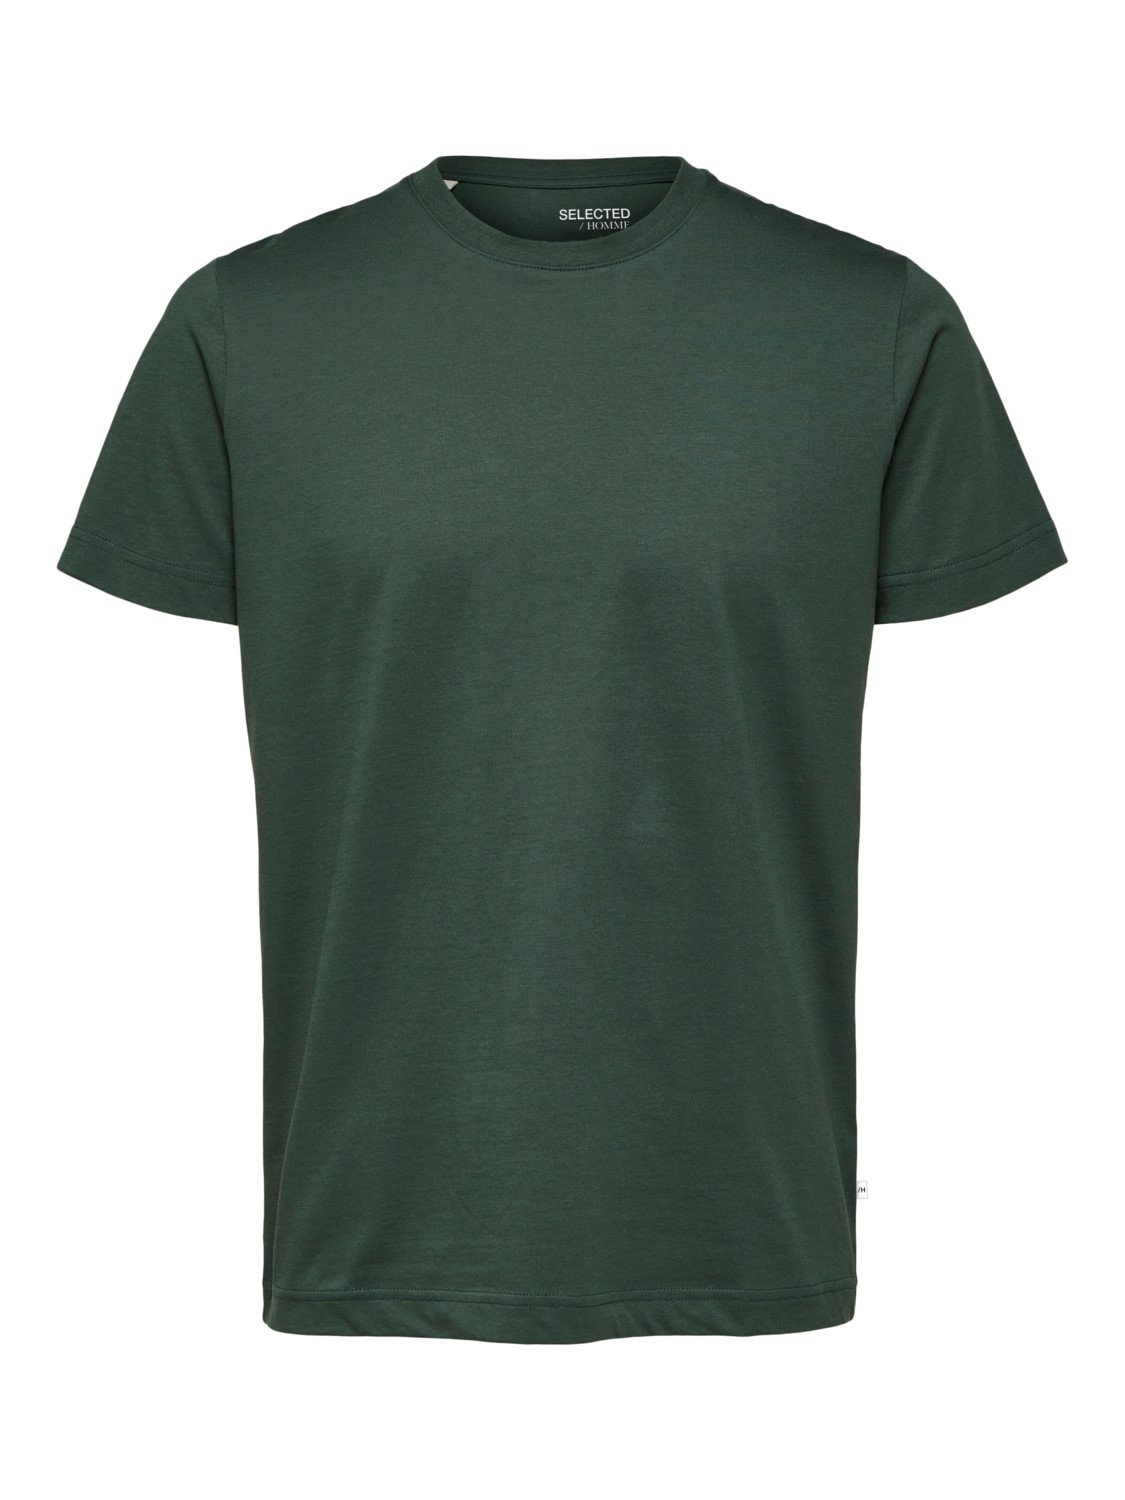 Selected - T-shirt o-neck sycamore | Gate36 Hobro